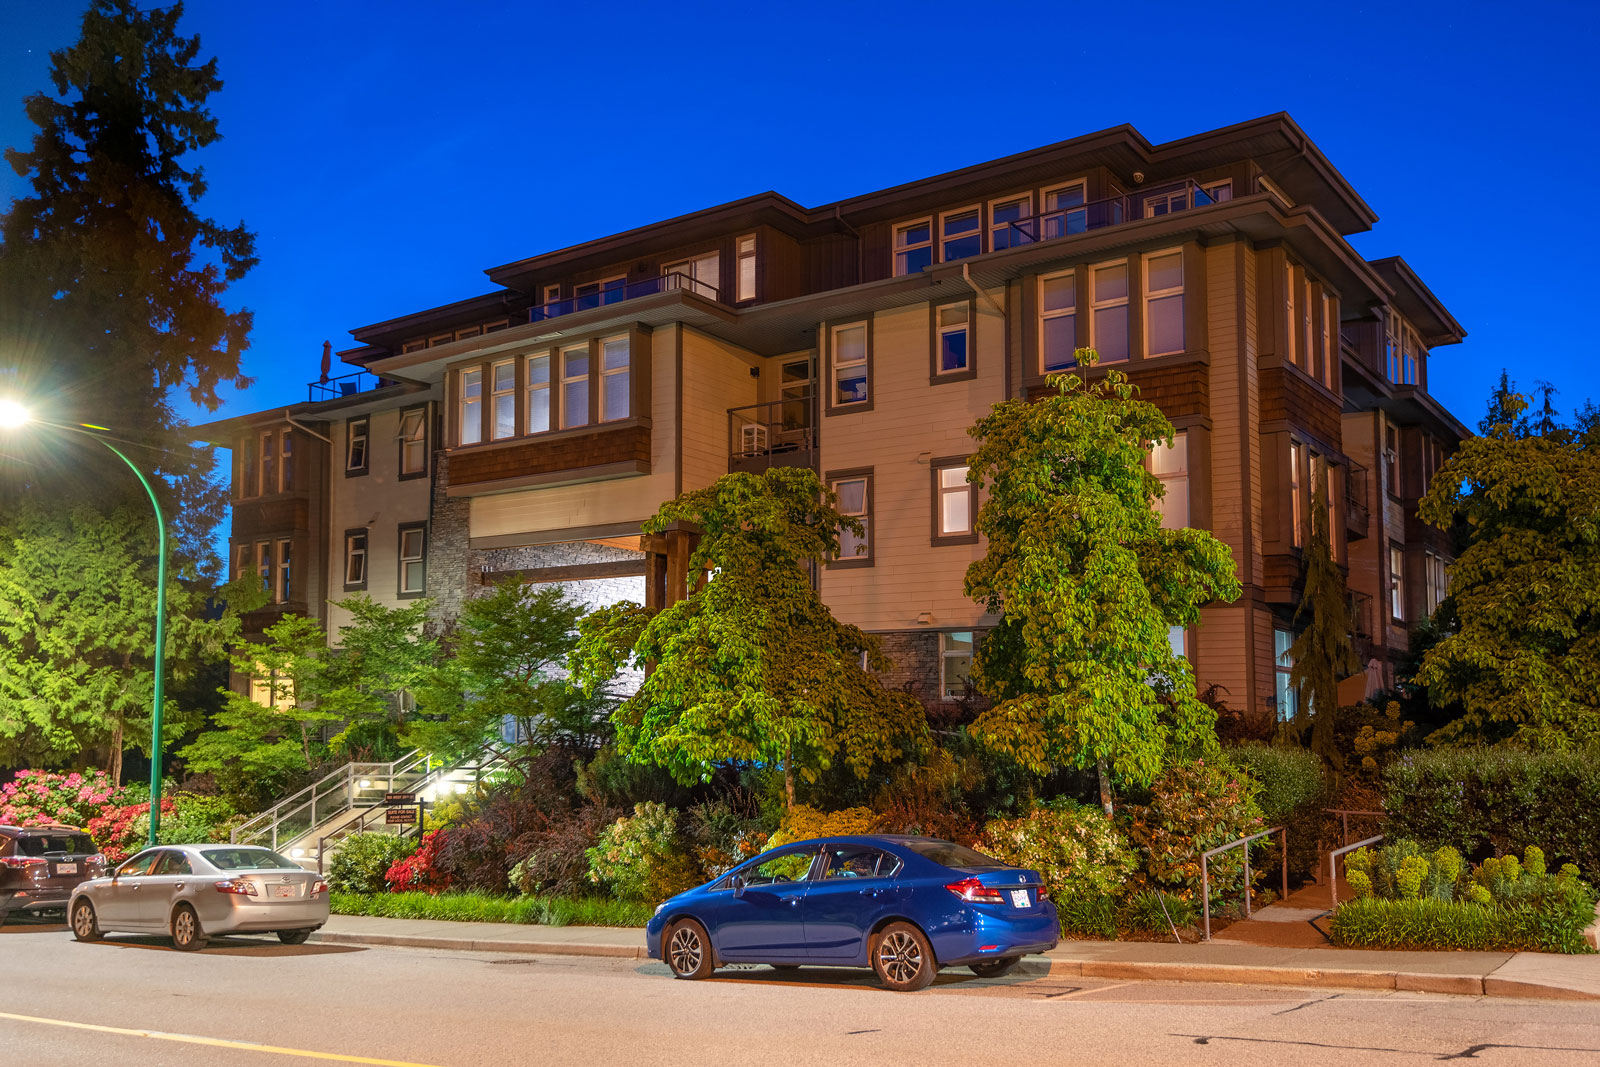 402 – 188 West 29th Street, North Vancouver, BC